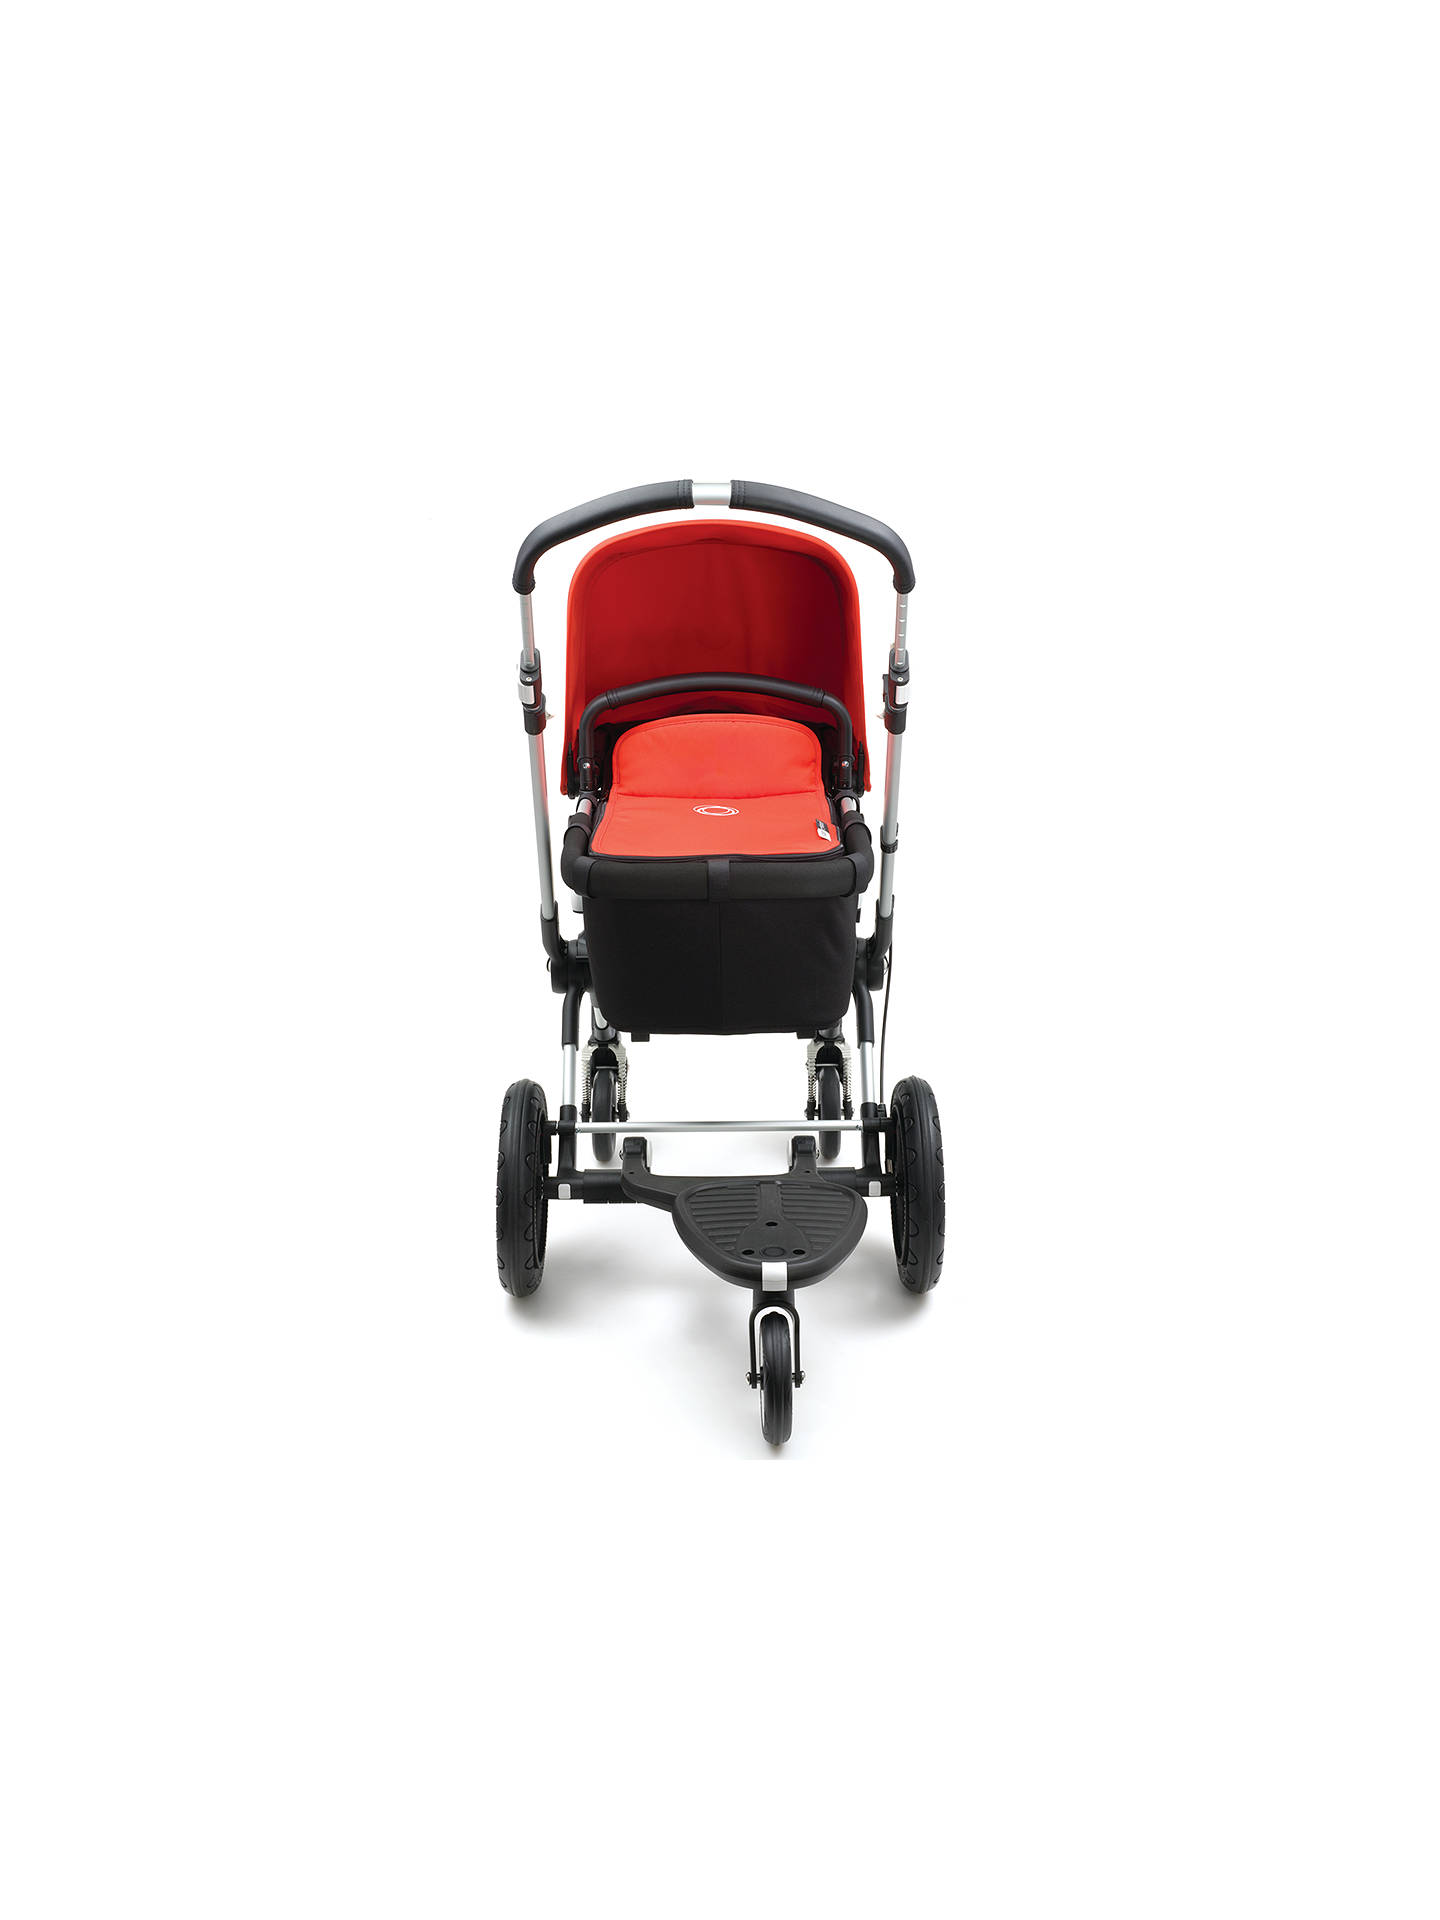 BuyBugaboo Pushchair Comfort Wheeled Board Online at johnlewis.com